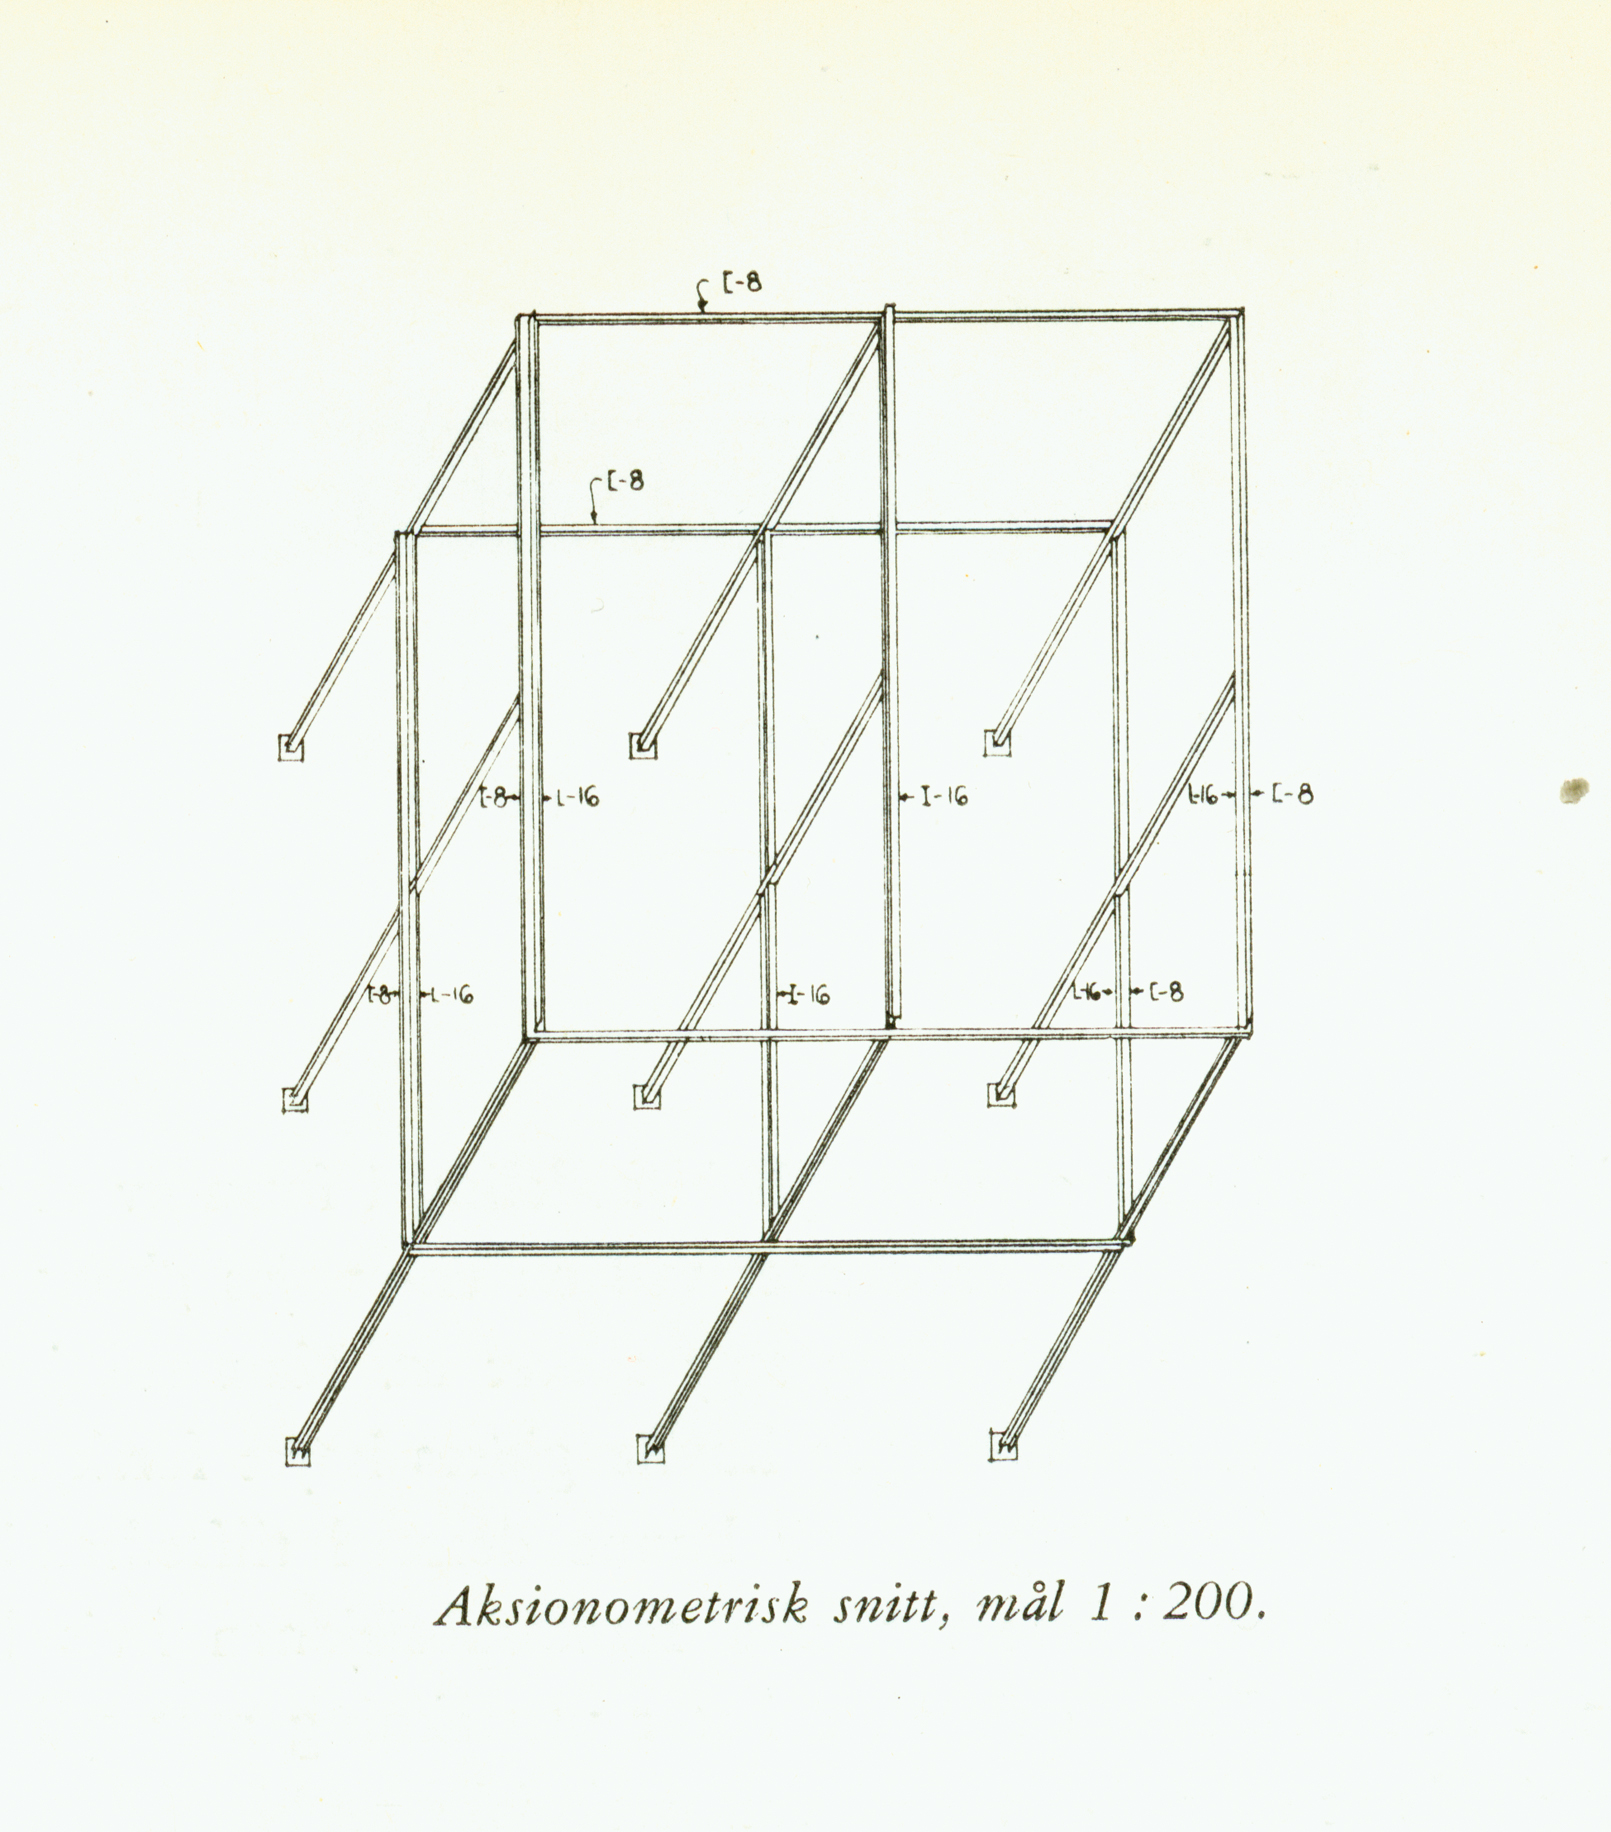 Norberg-Schulz and Korsmo attempted to pass off their wooden building as a steel structure by using diagrammatic axonometric drawings (14) and details of steel mock ups supported by wood (15). As published in _Byggekunst_, n.7 (1955).